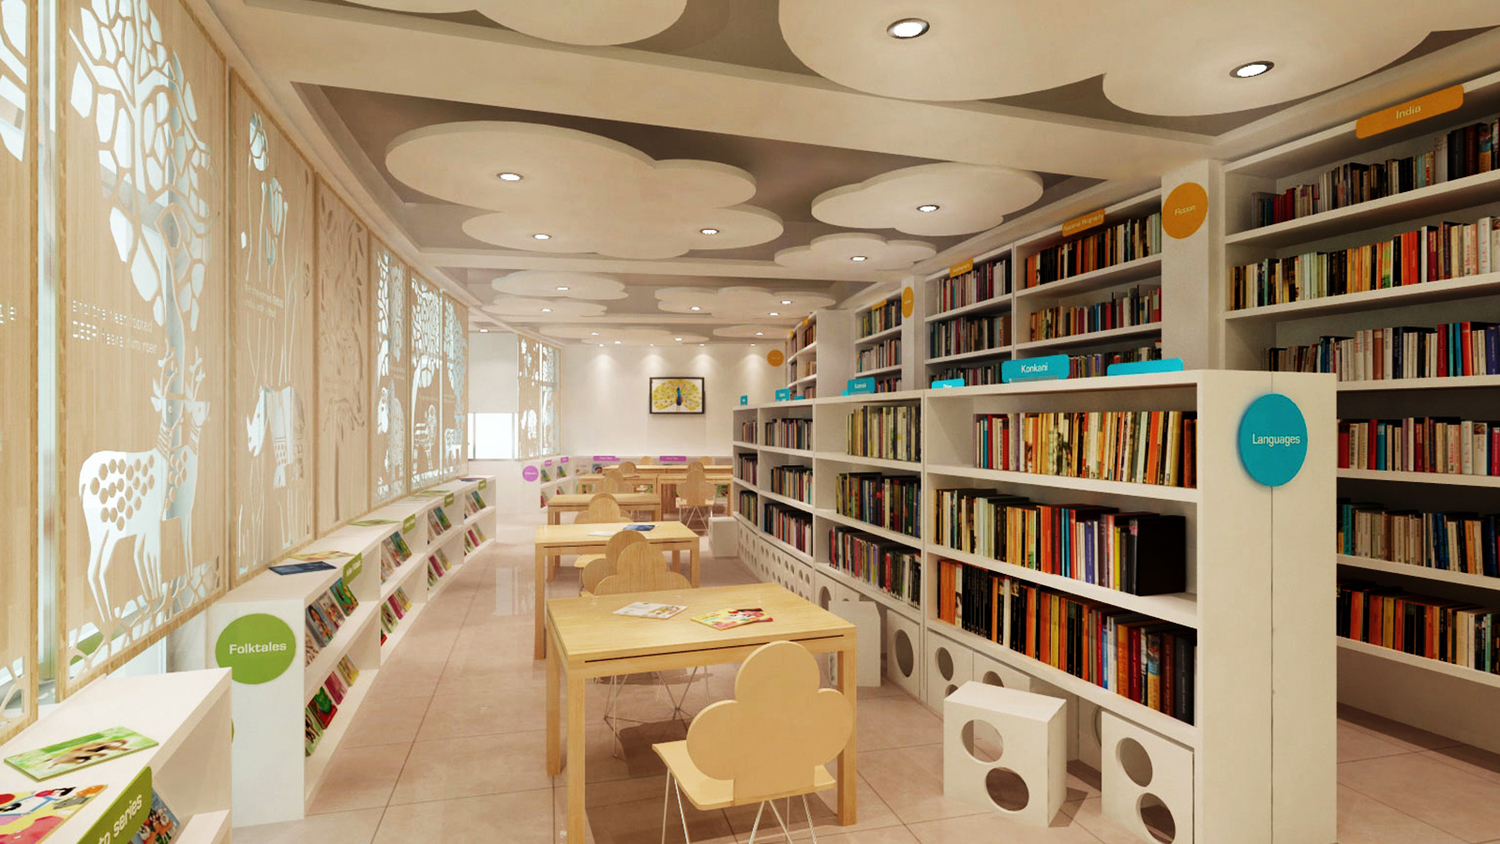 national center for children's literature - new delhi